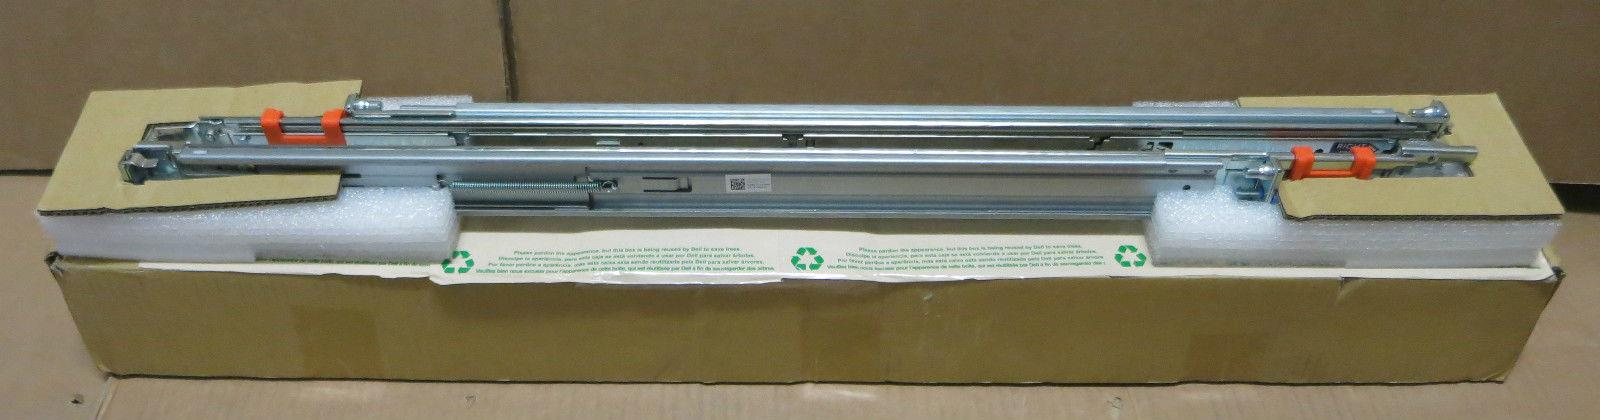 DELL POWEREDGE R420 Rack Mount Rail kit